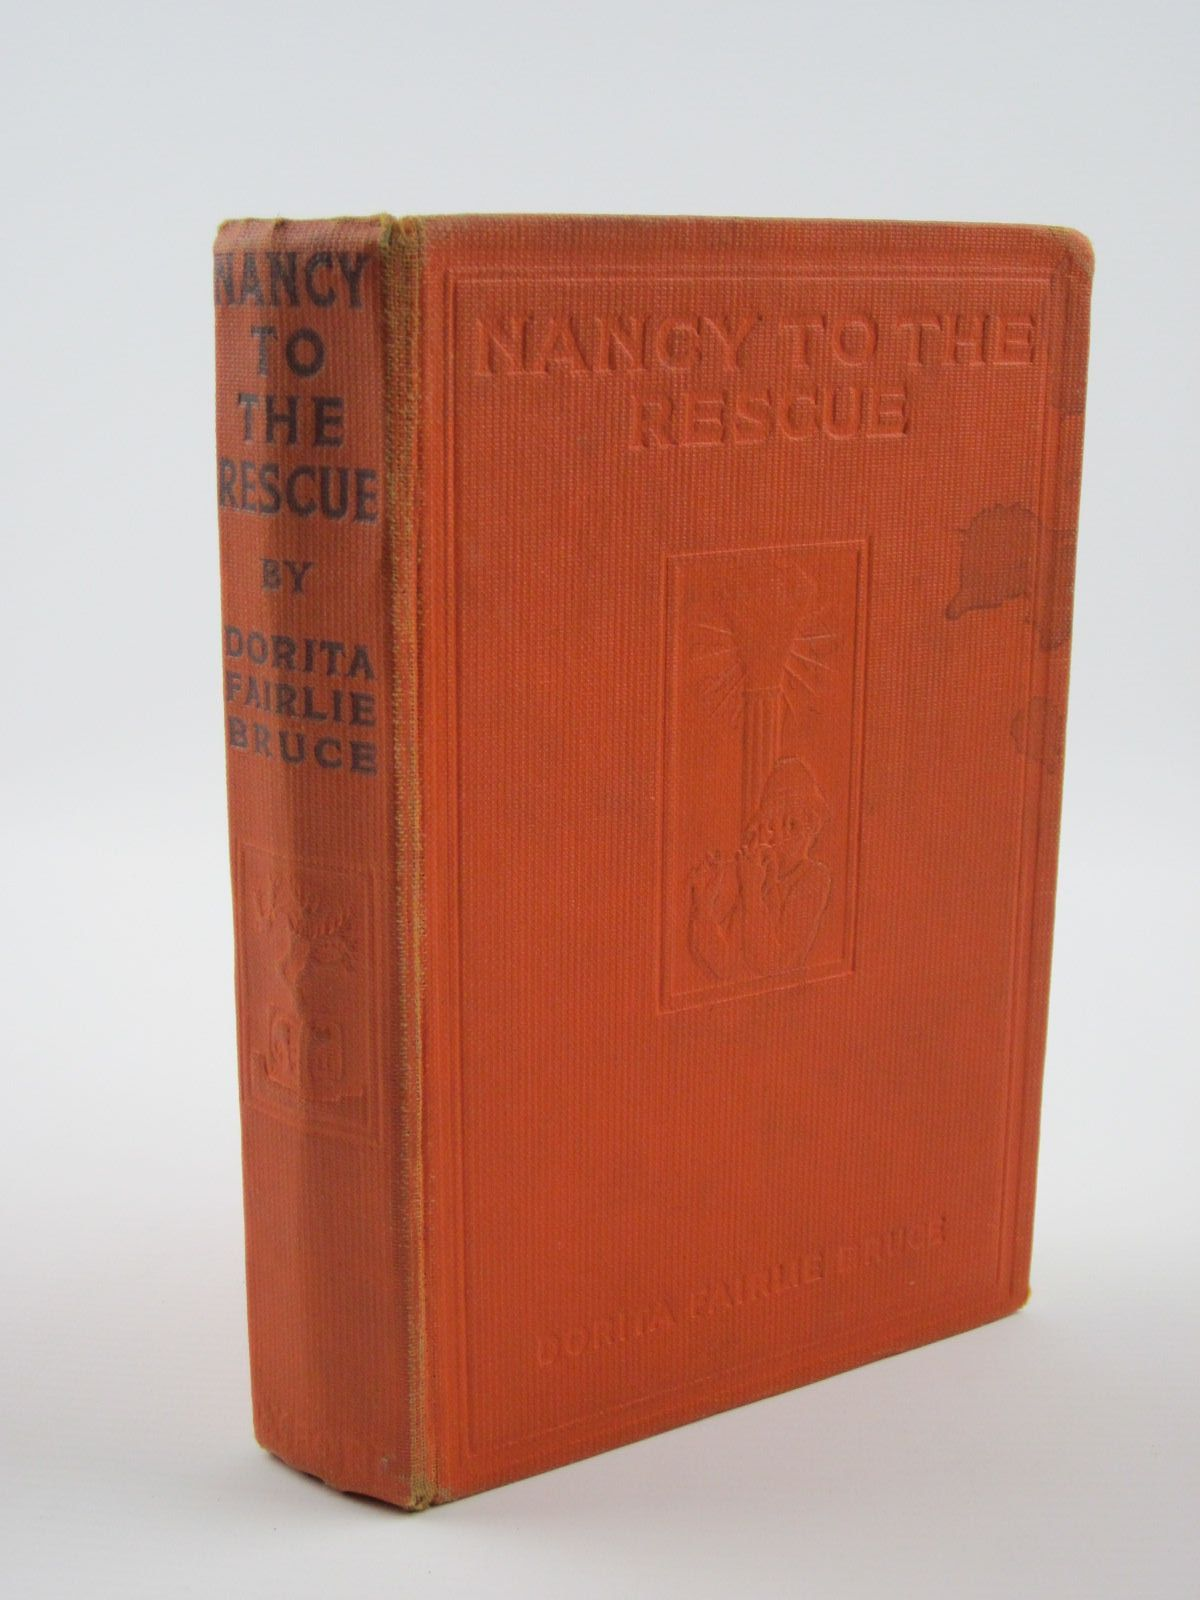 Photo of NANCY TO THE RESCUE written by Bruce, Dorita Fairlie published by Oxford University Press, Humphrey Milford (STOCK CODE: 1309636)  for sale by Stella & Rose's Books